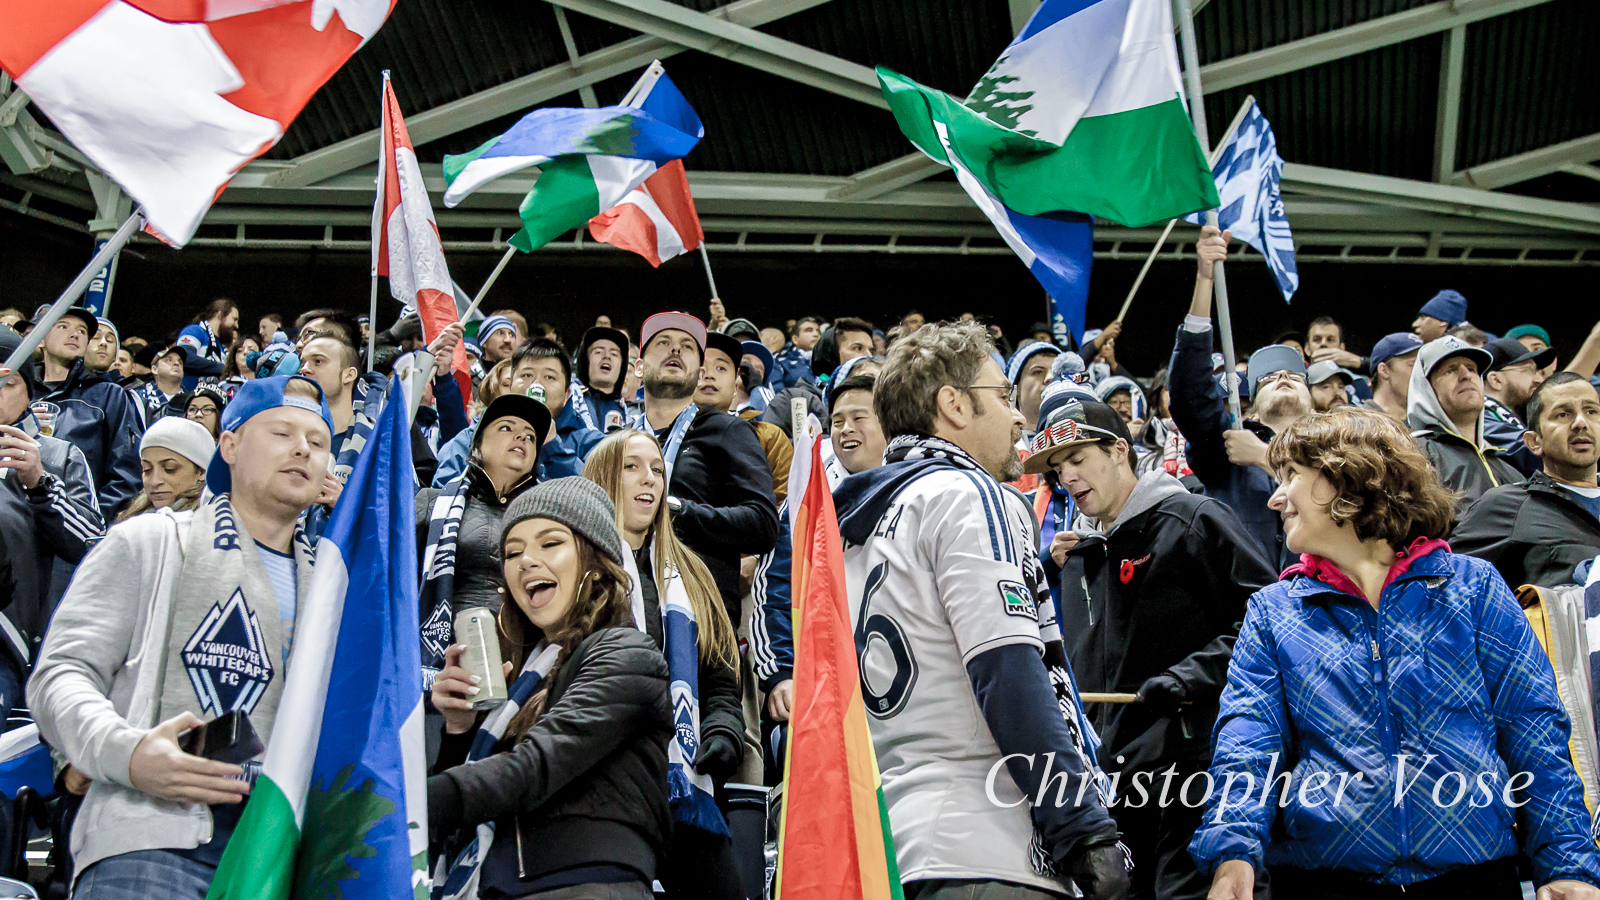 2017-11-02 Vancouver Whitecaps FC Supporters 2.jpg